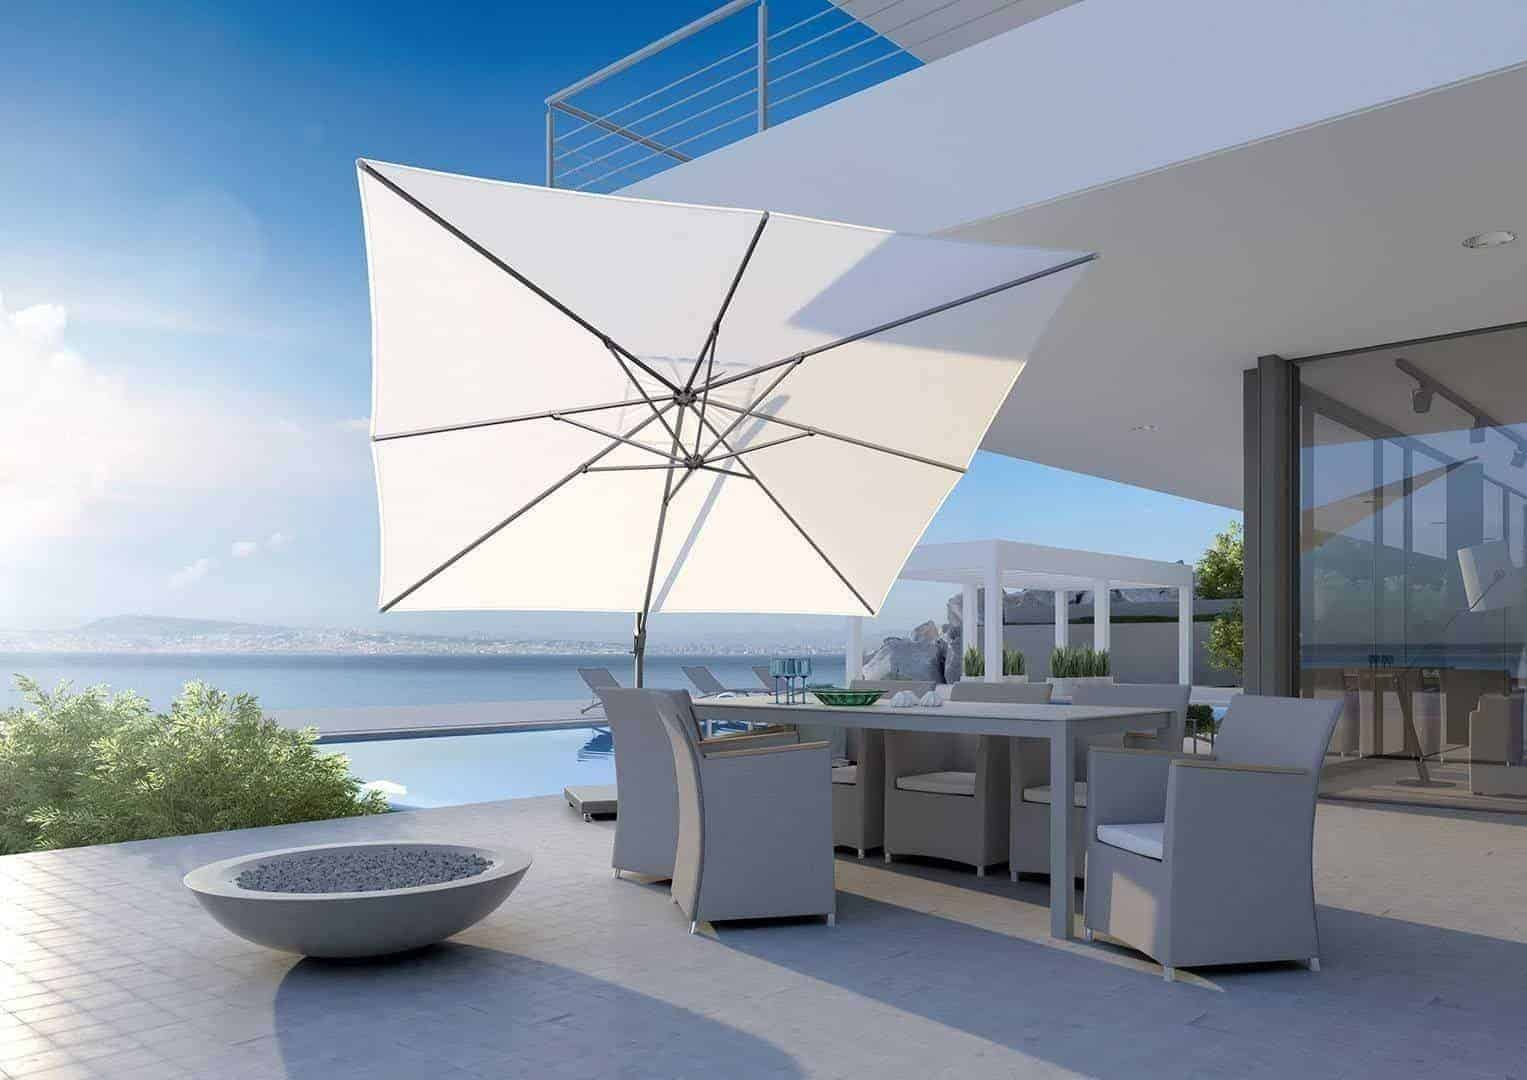 Parasol ogrodowy CHALLENGER T2 3 m x 3 m white 7139A 570